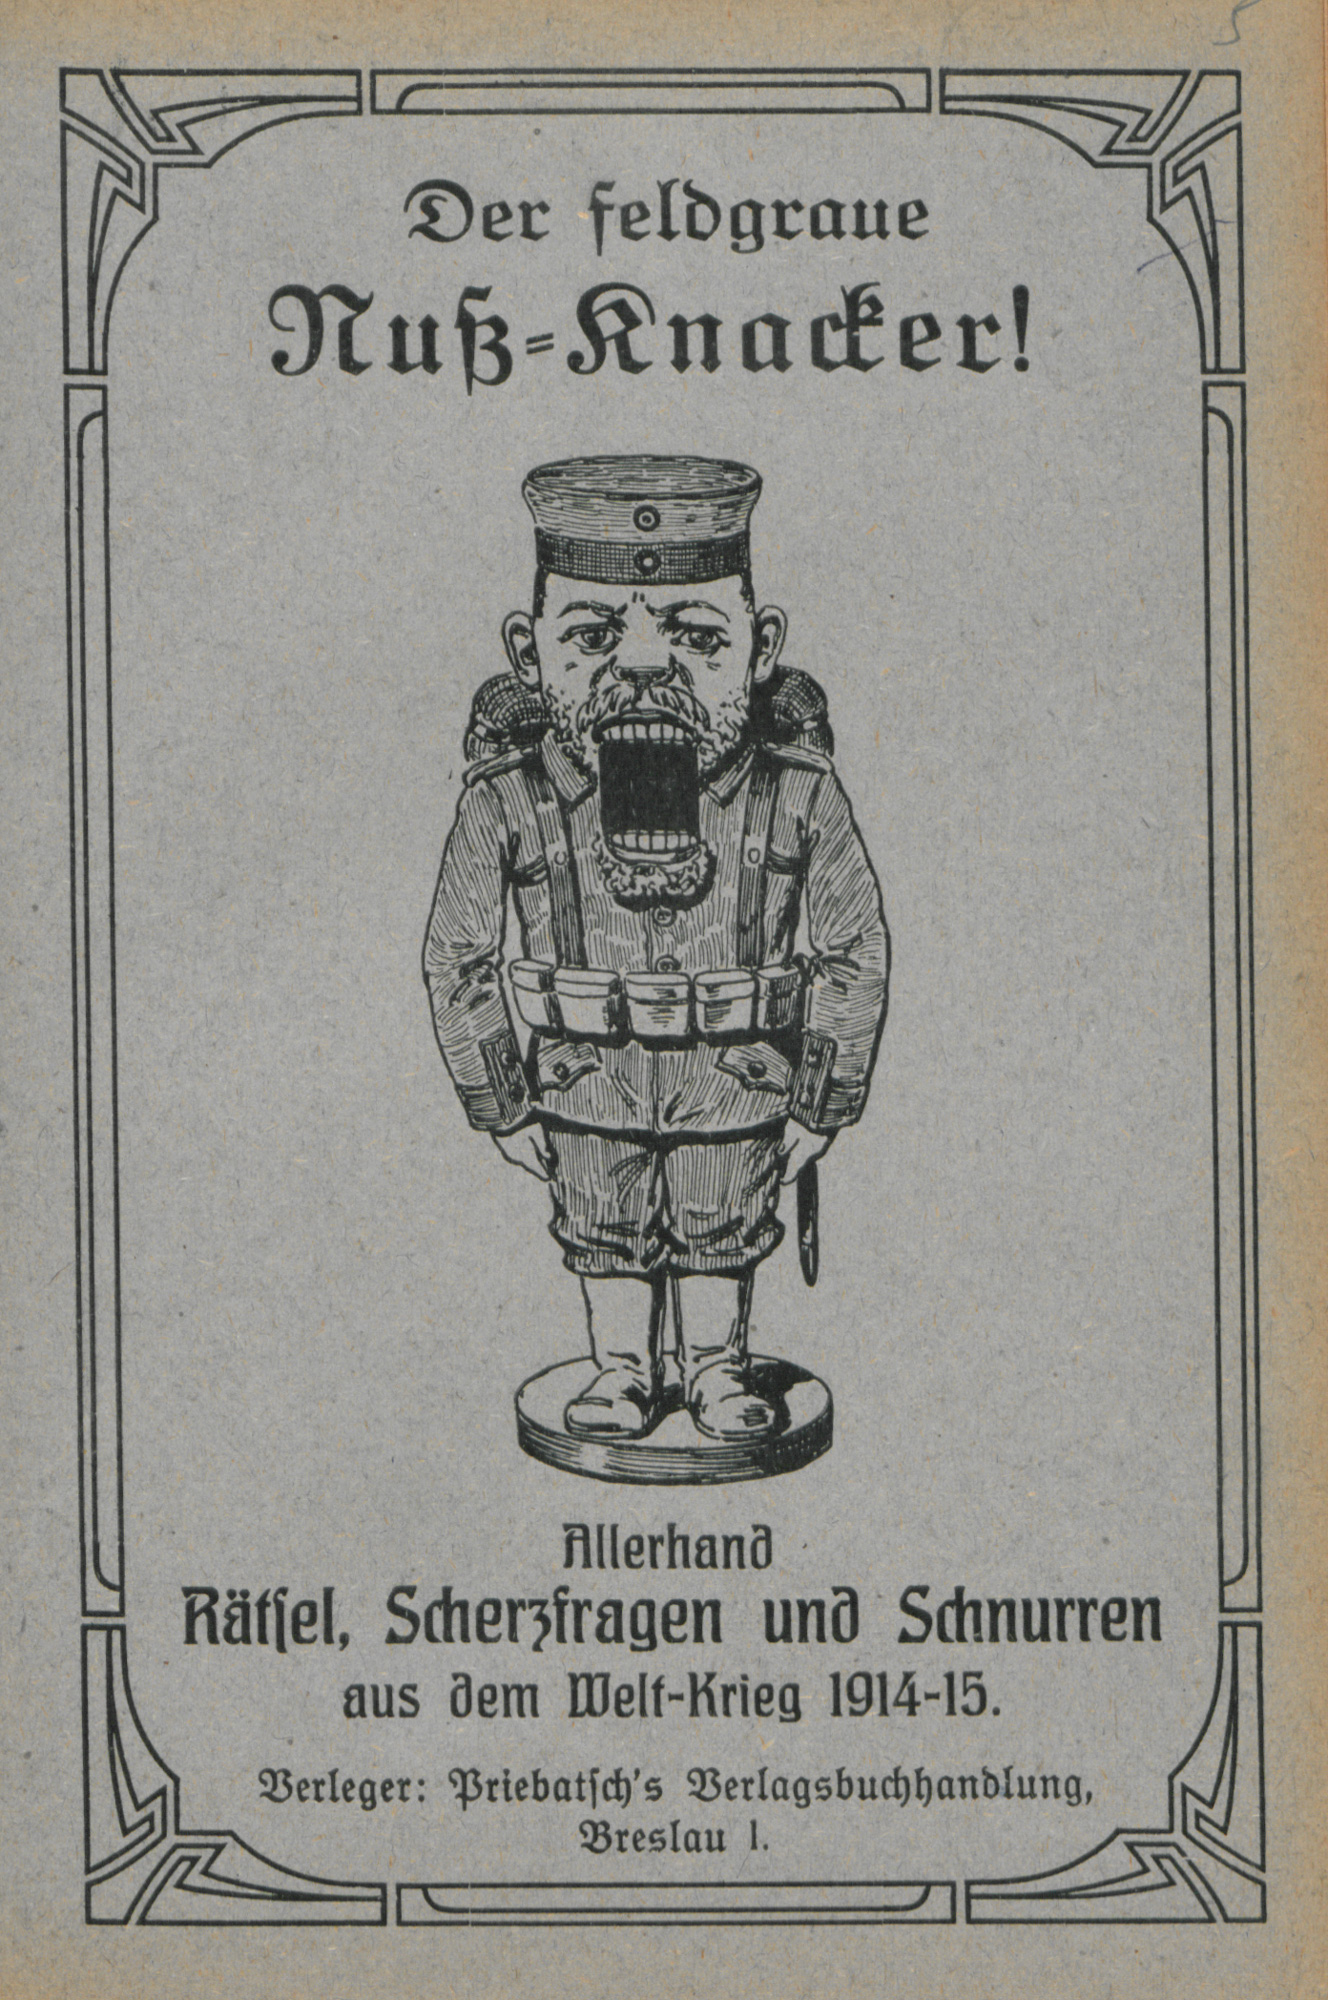 The field-grey Nutcracker! All kinds of puzzles, riddles and humming from the world war 1914/15